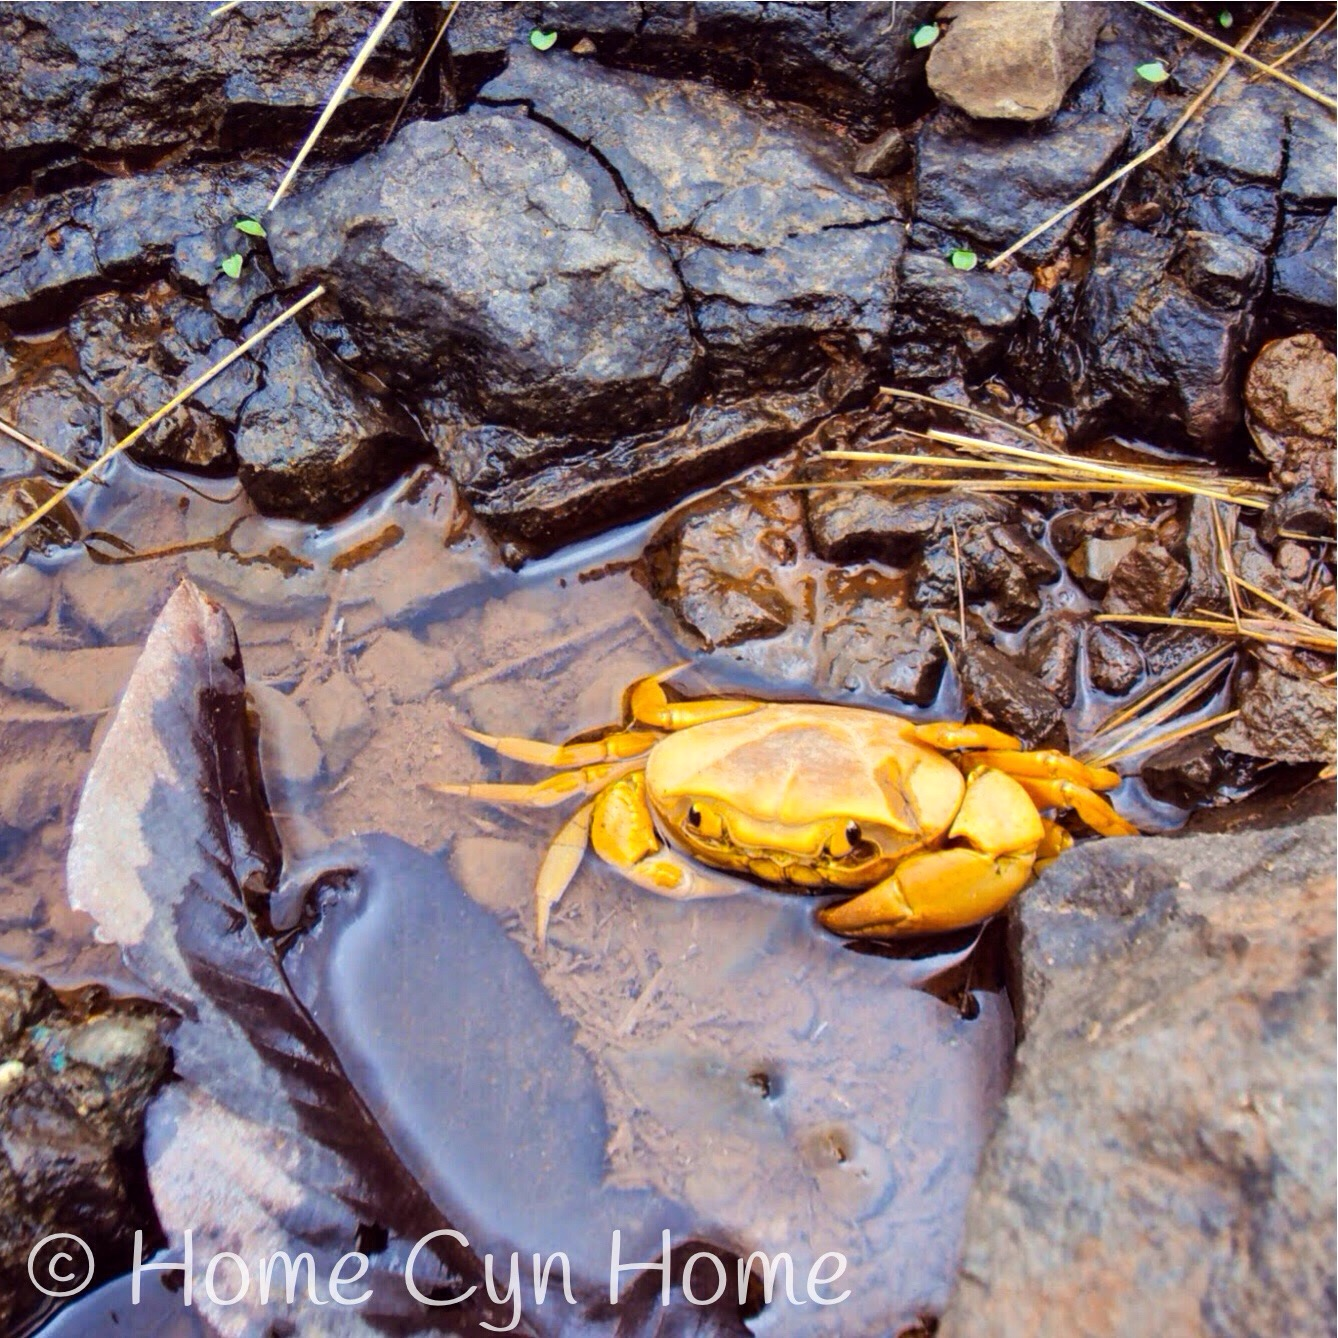 these crabs are found all around Lonavla.